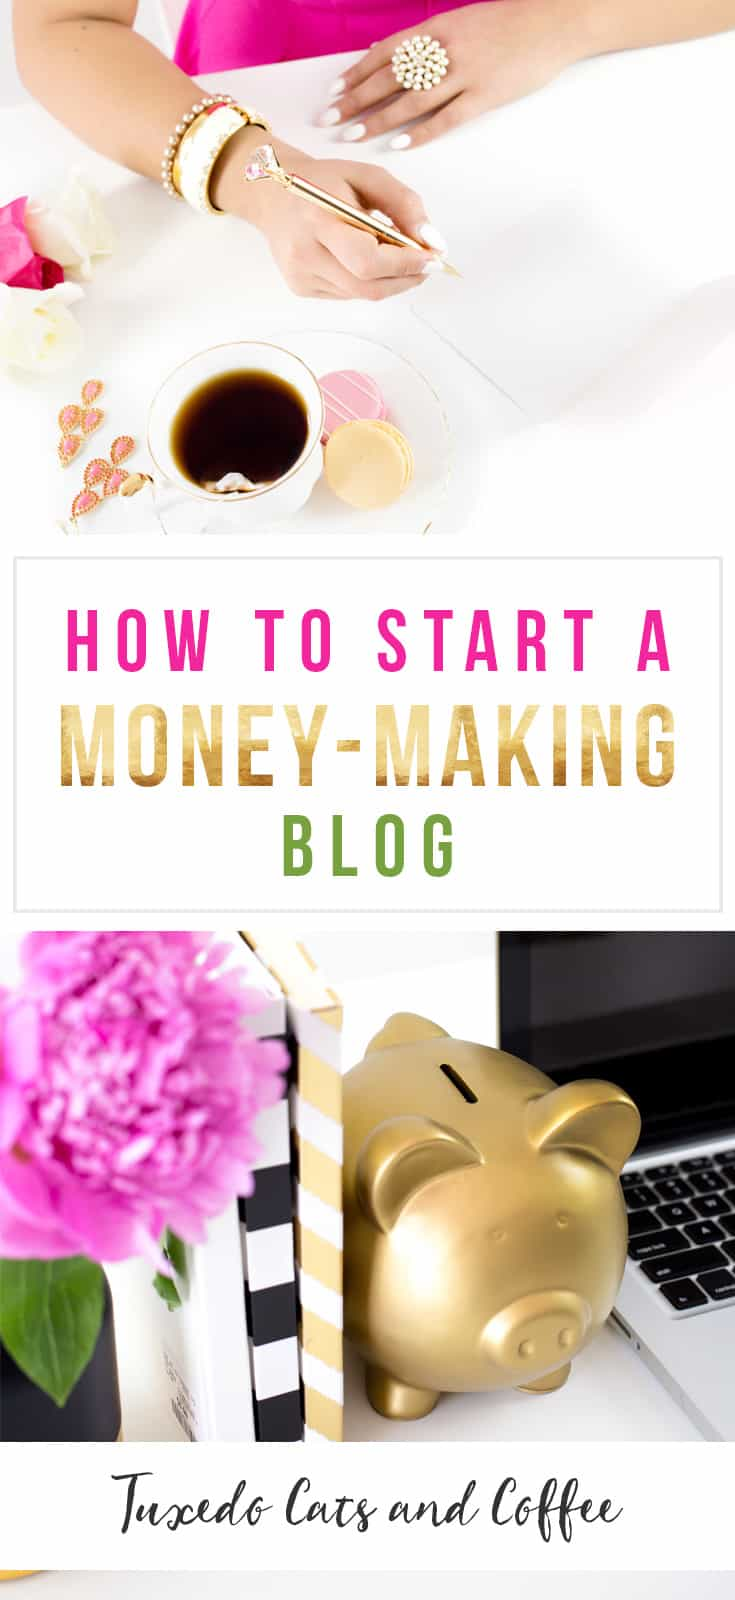 Learning how to start a blog is a great way to bring in a little extra side hustle income each month or even make a living from it. I run a few different lifestyle blogs and this is what I do full time. :) Here's a free step-by-step guide from one of my other websites to show you how to start a blog for extra income step-by-step.